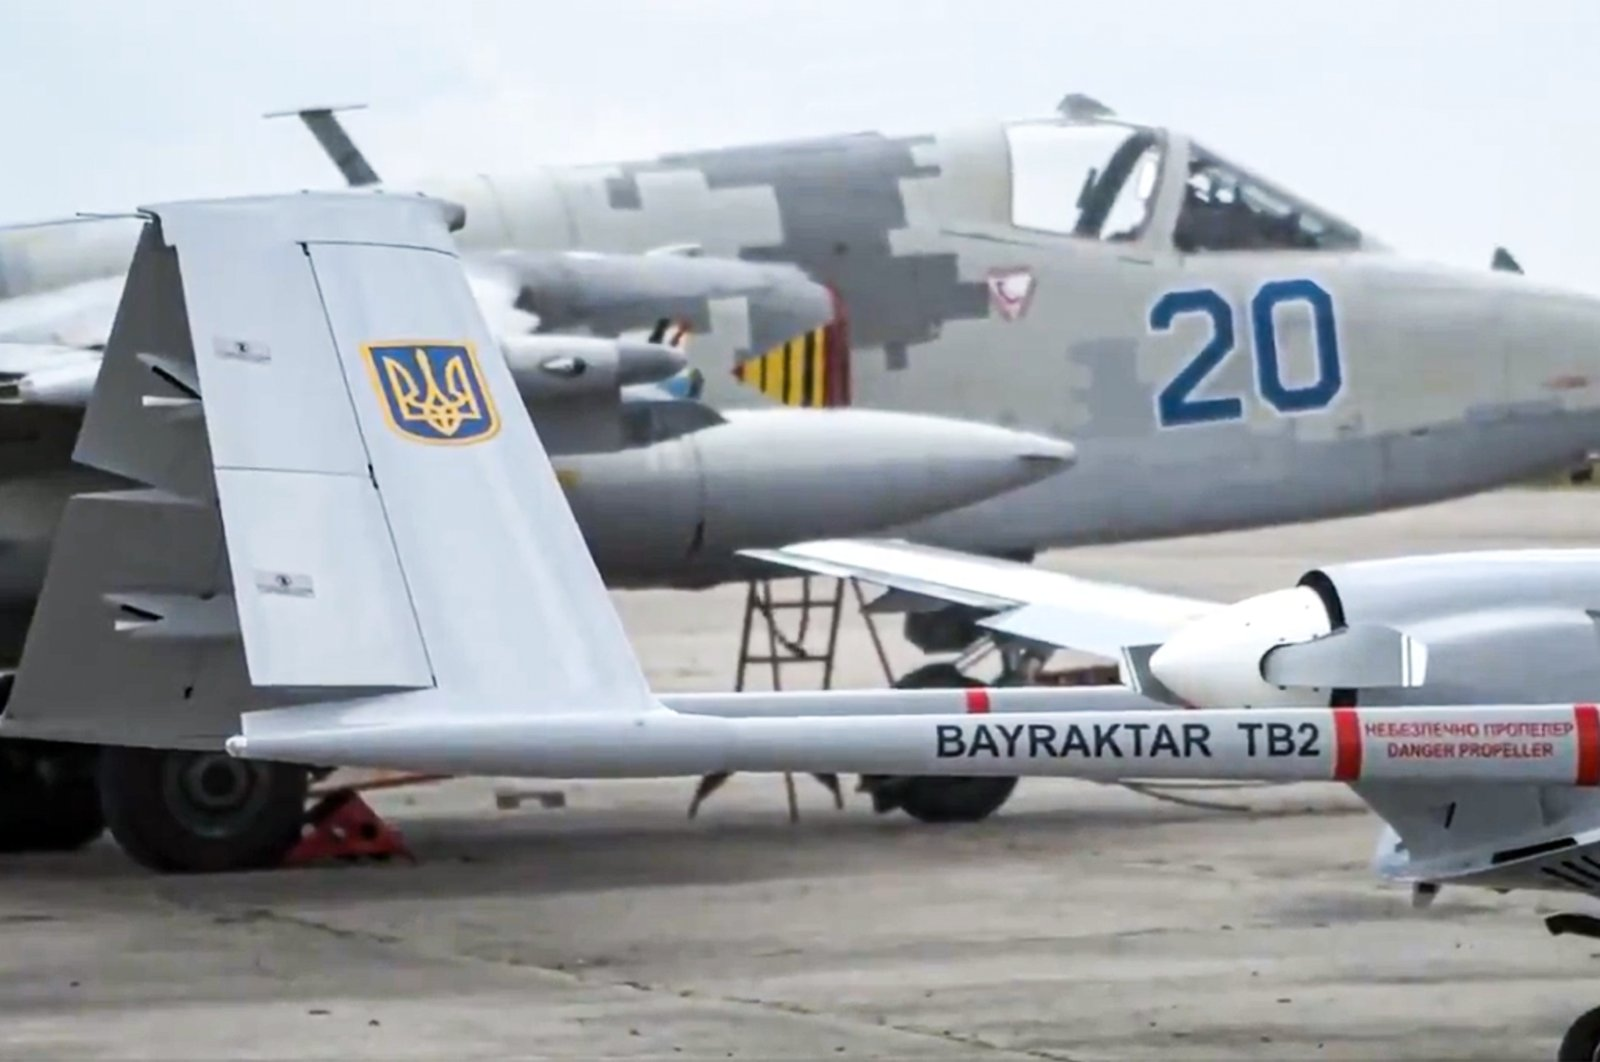 A screen grab shows a Bayraktar TB2 UCAV owned by the Ukrainian army during the Sea Breeze military exercise in the Black Sea, June 30, 2021.